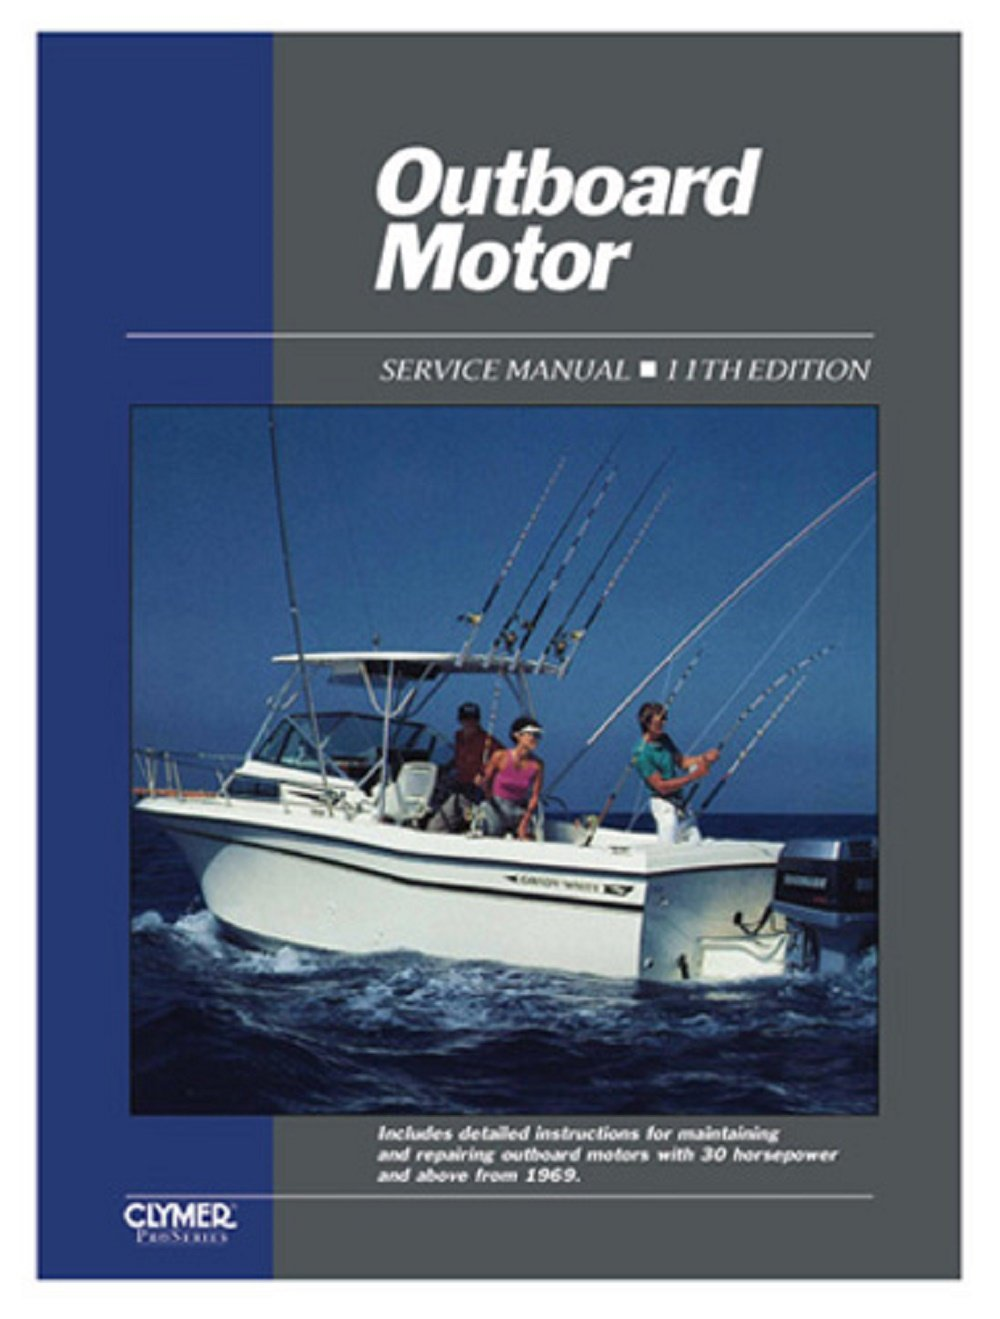 Amazon.com: Clymer Outboard Motor Service Manual Vol. 2 1969-1989 by  Clymer: Automotive